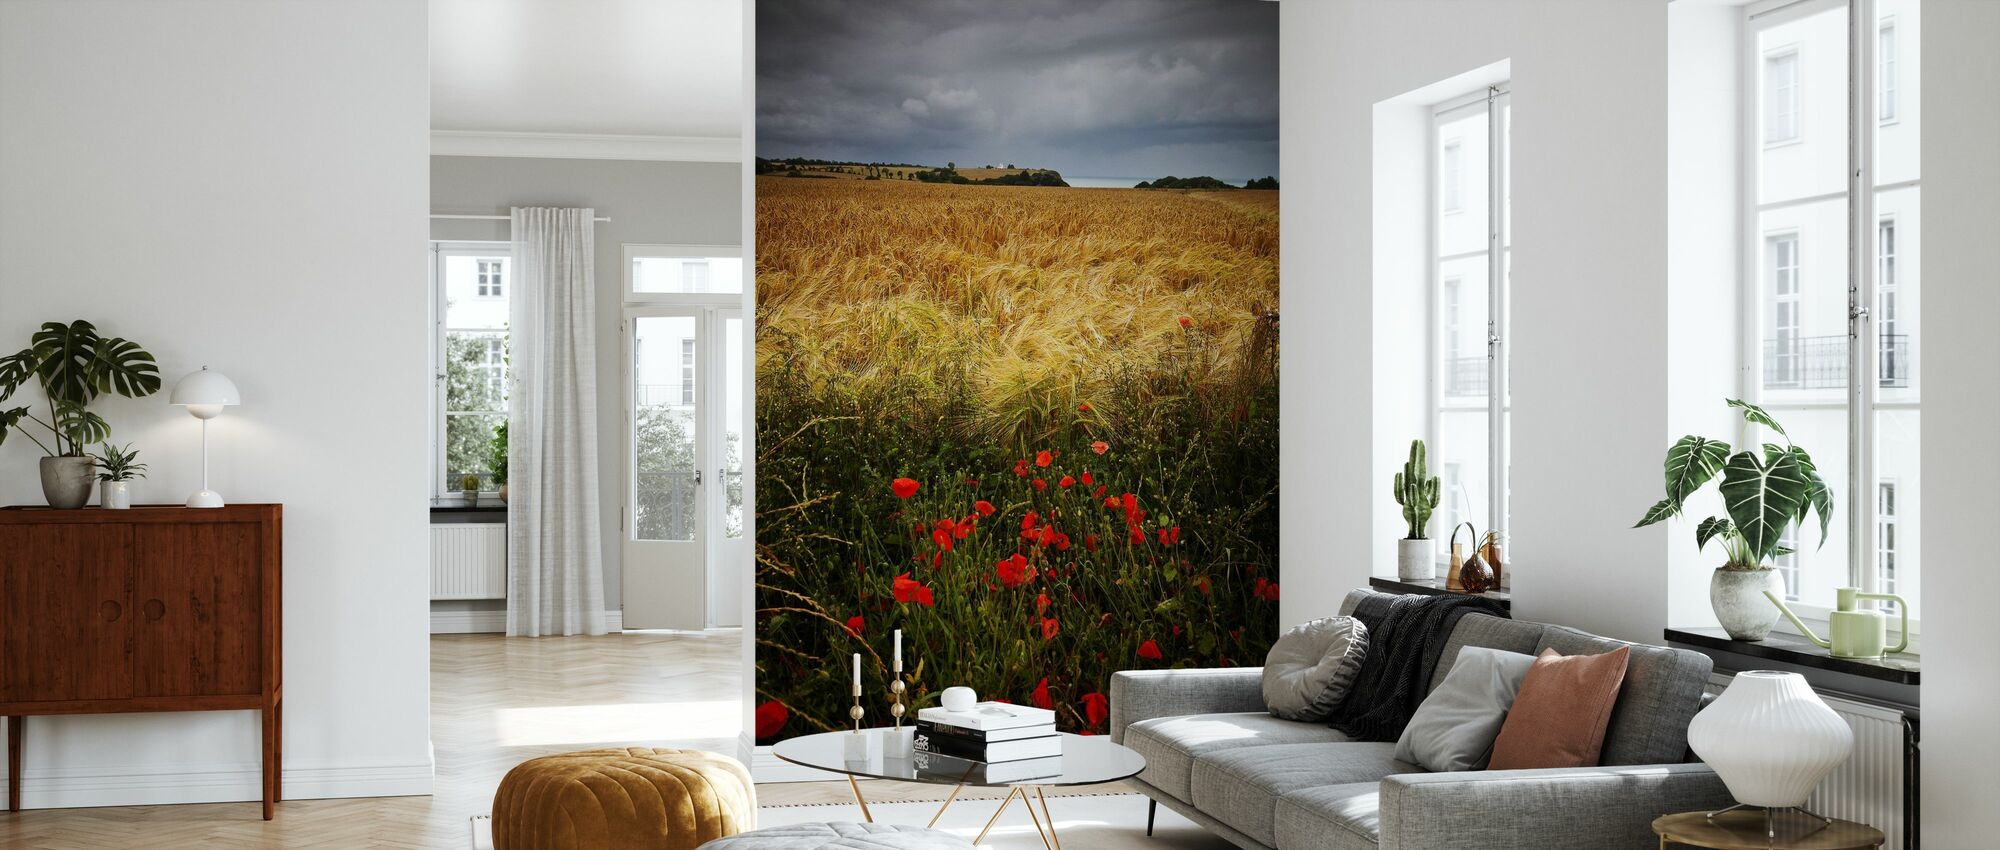 Poppies and Hay Field - Wallpaper - Living Room